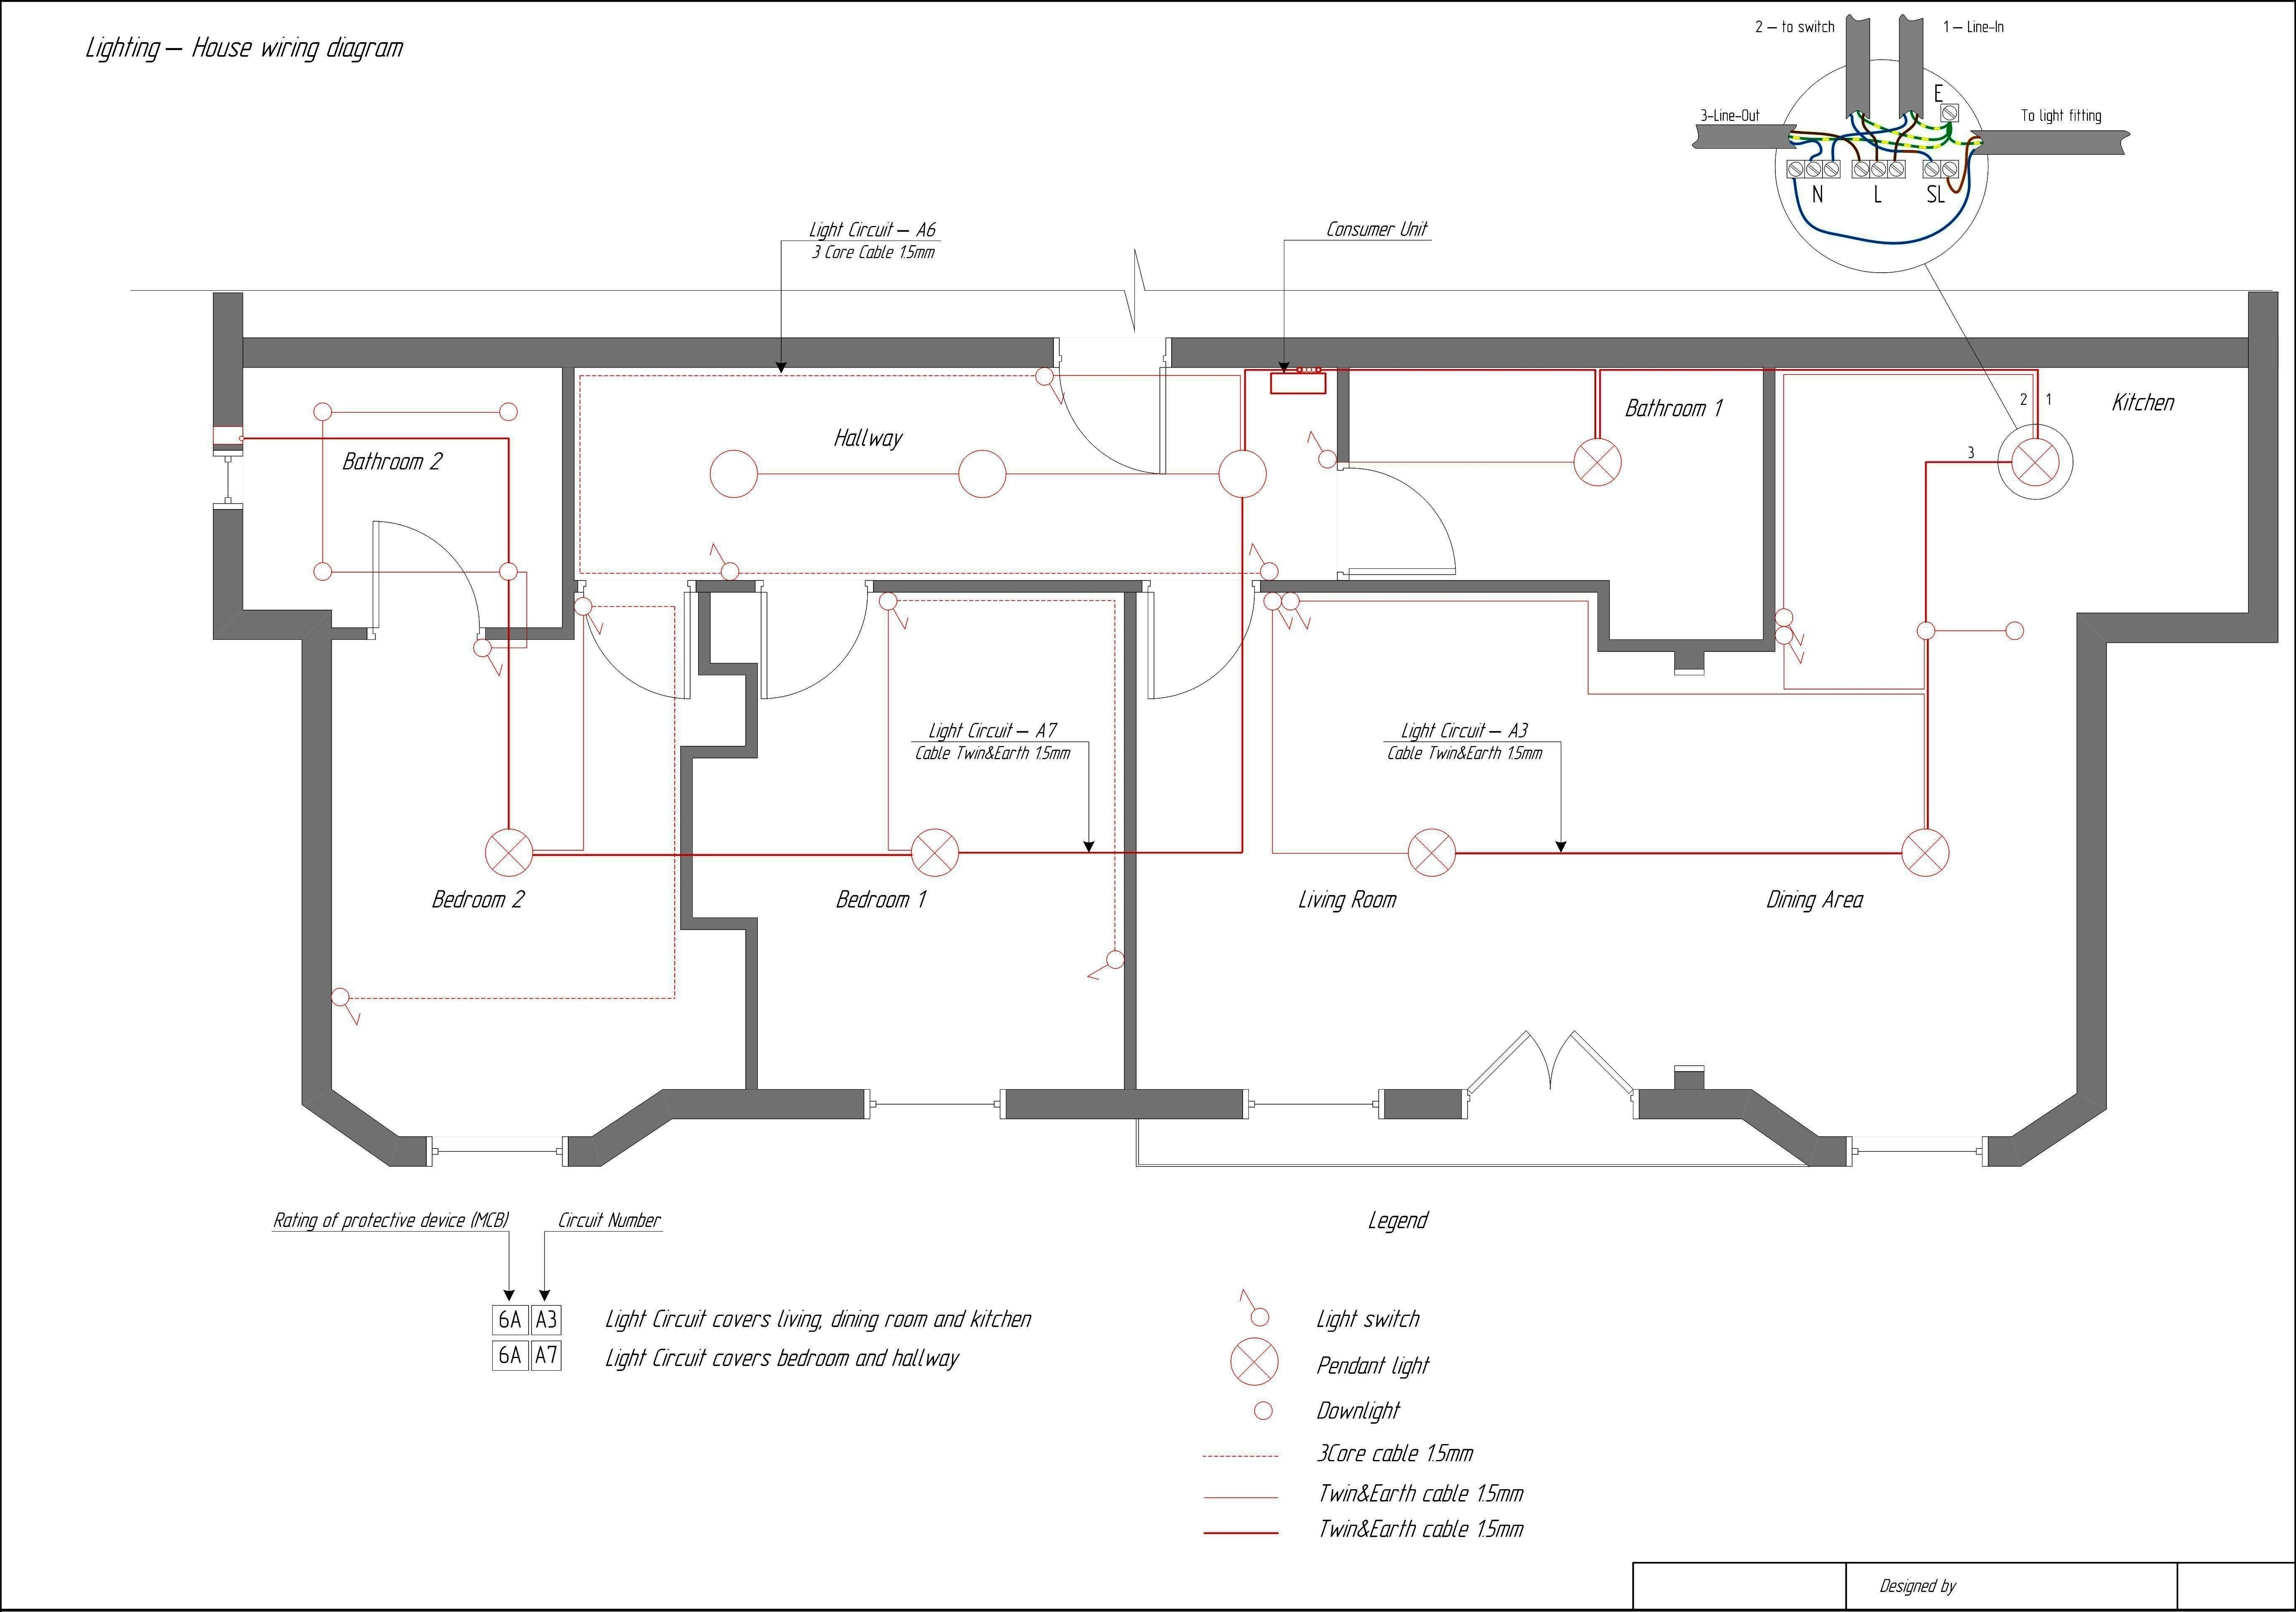 Wiring Diagram for House Lighting Circuit Best Residential Electrical Plans • Electrical Outlet Symbol 2018 Of Wiring Diagram for House Lighting Circuit